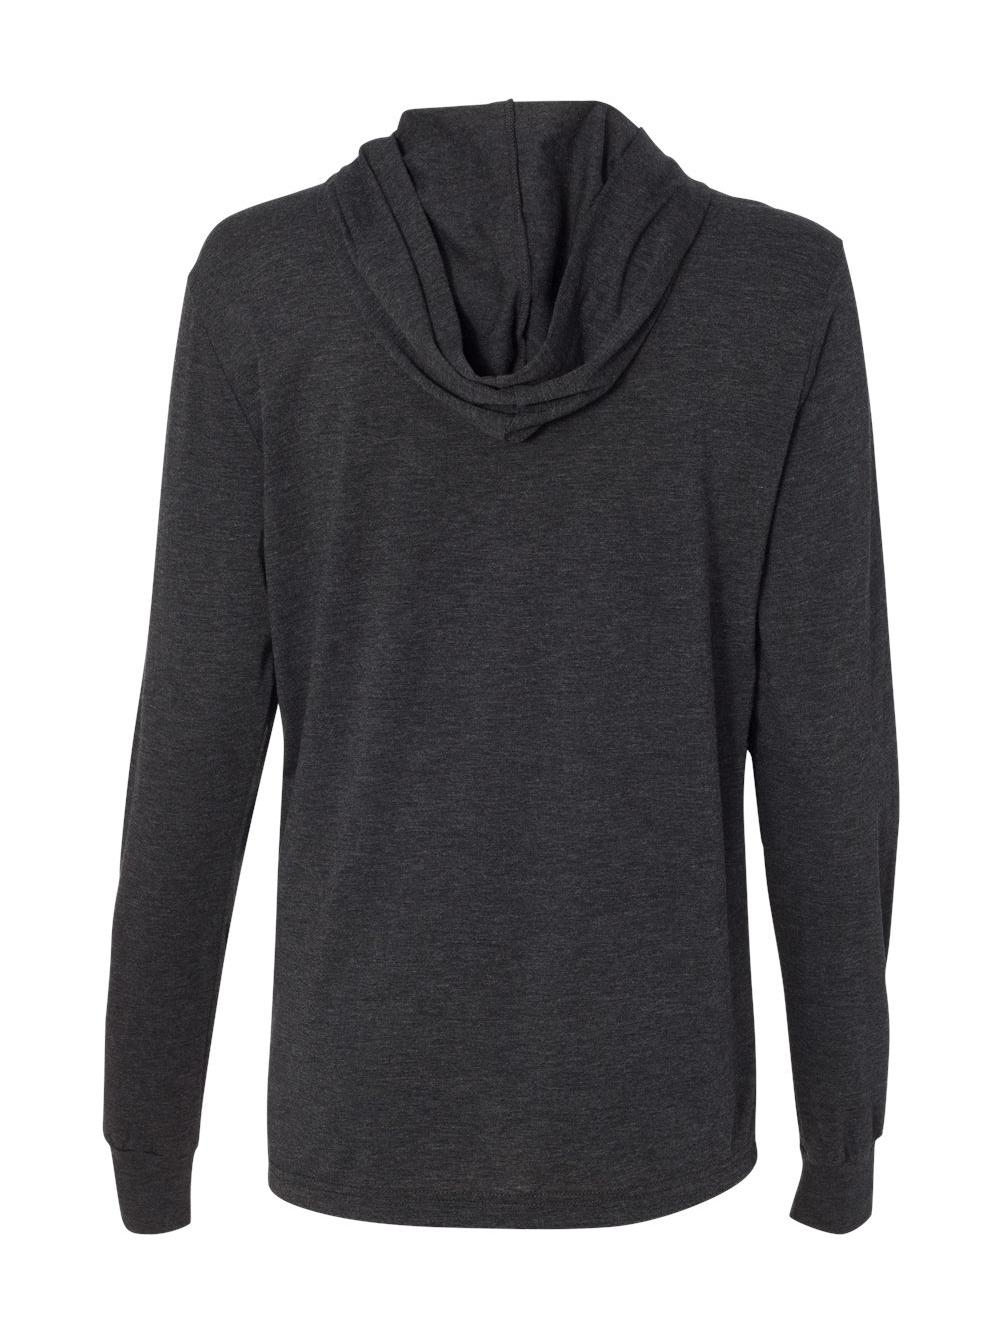 Bella-Canvas-Unisex-Long-Sleeve-Jersey-Hooded-Tee-3512 thumbnail 10